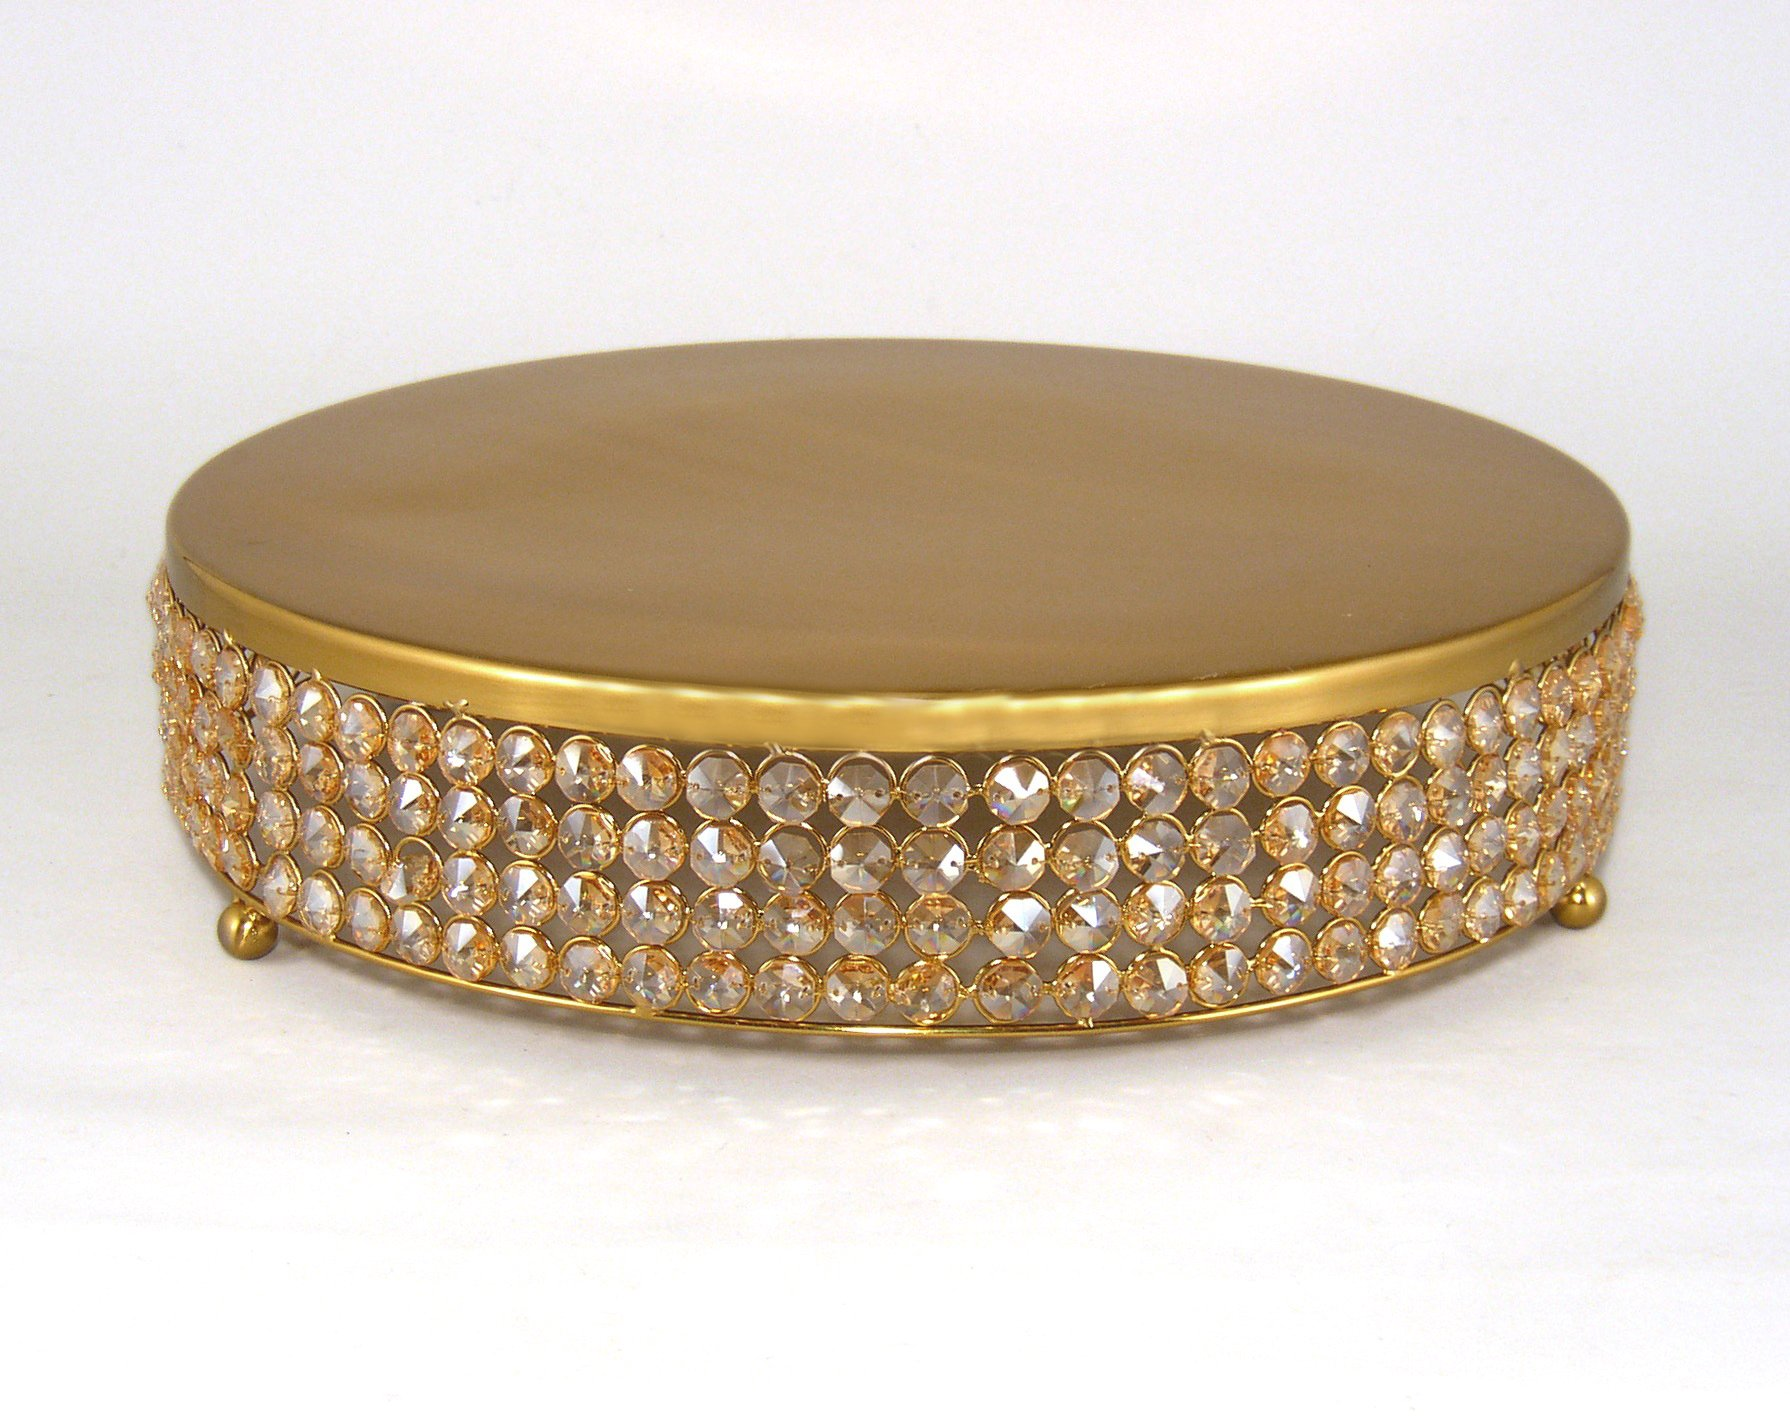 Wedding Champagne Colored Crystal Bead and Antique Gold Finish Metal Cake Stand 16''Diameter